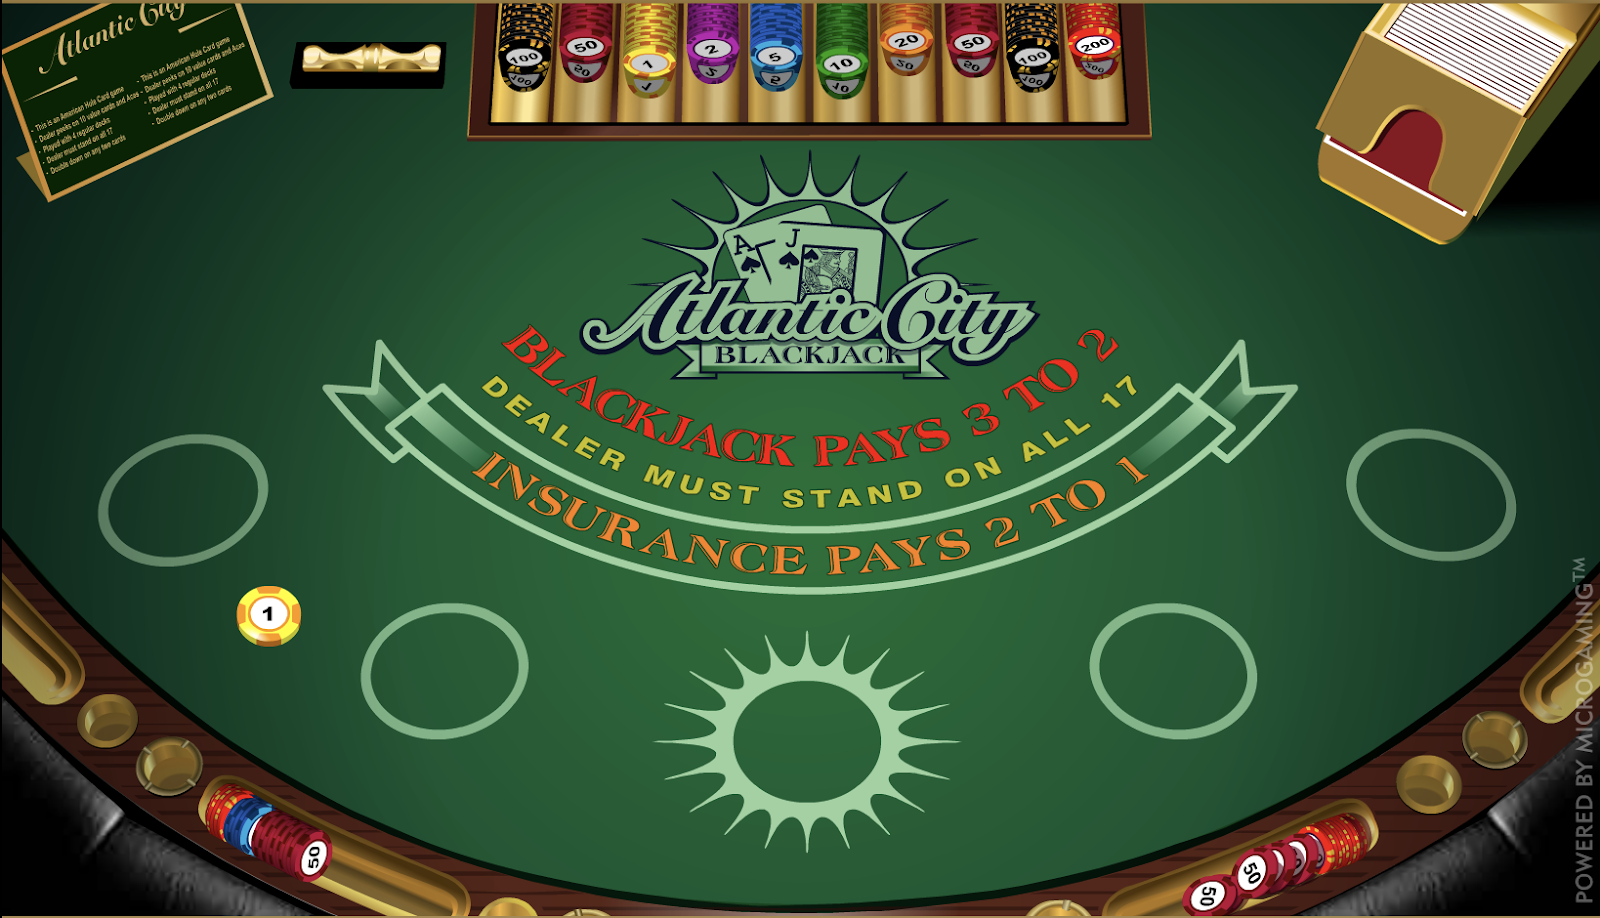 Slot city daily bonus